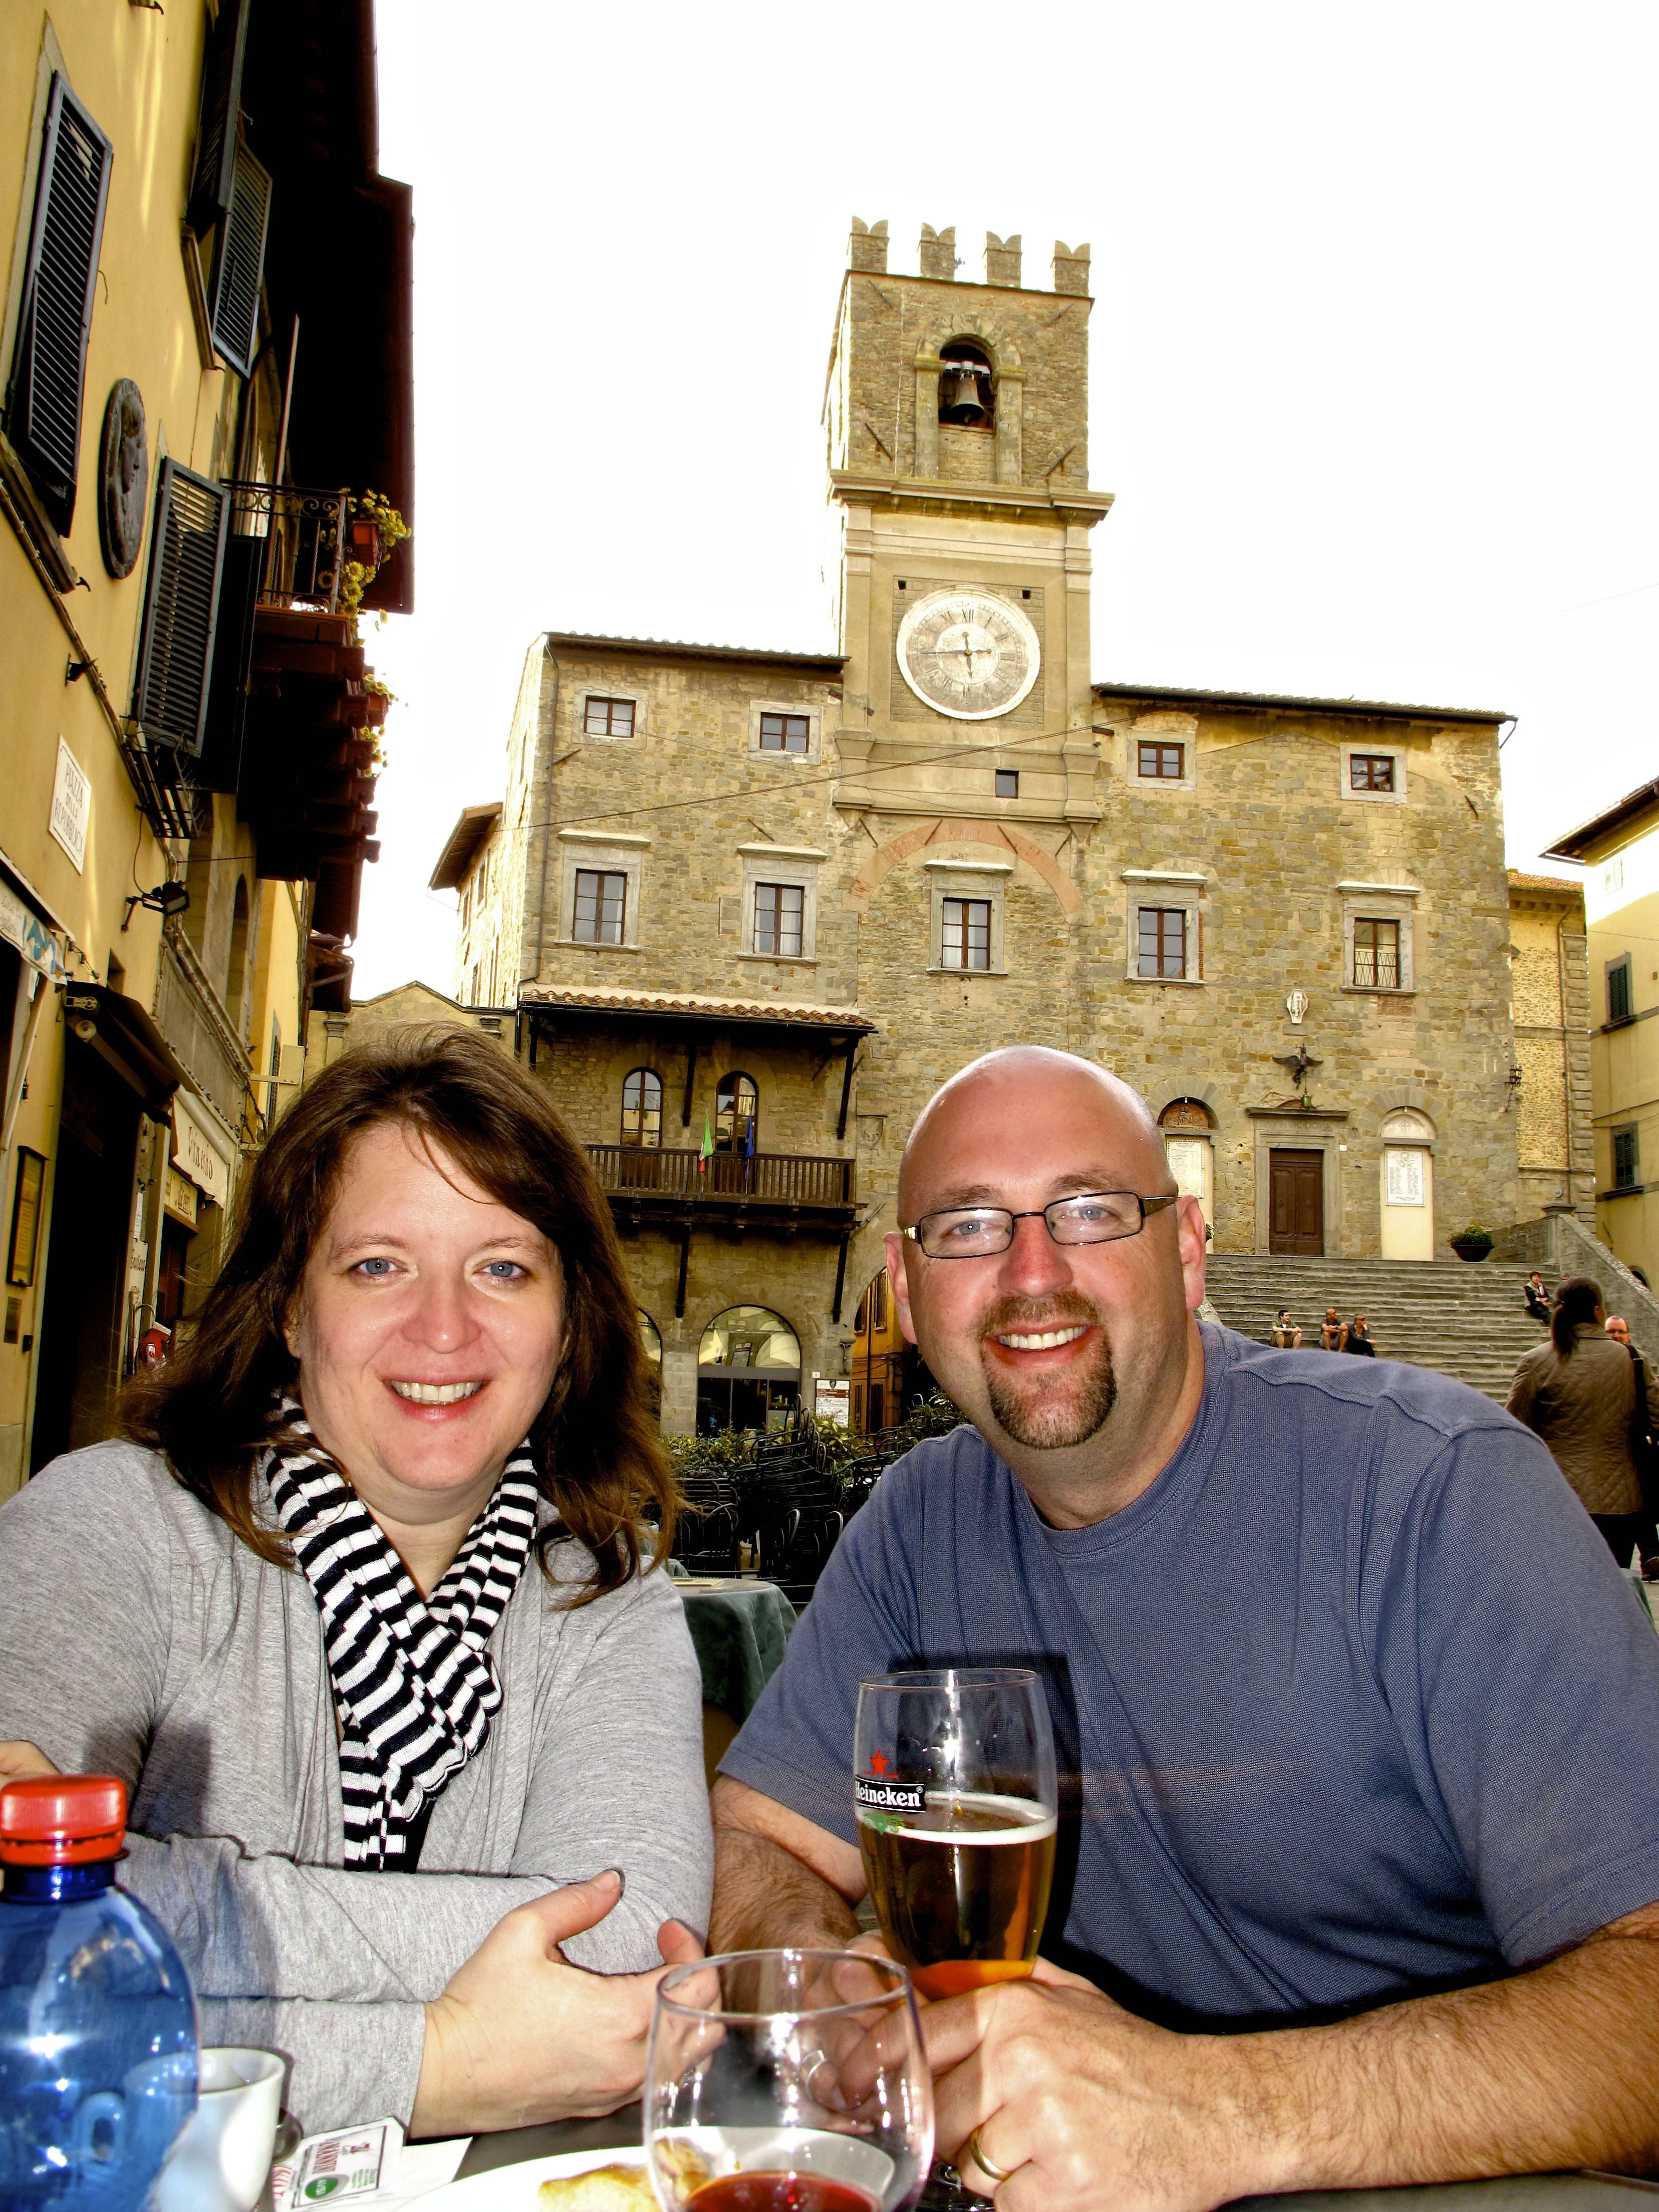 Travis and his wife Anjanette in Cortona